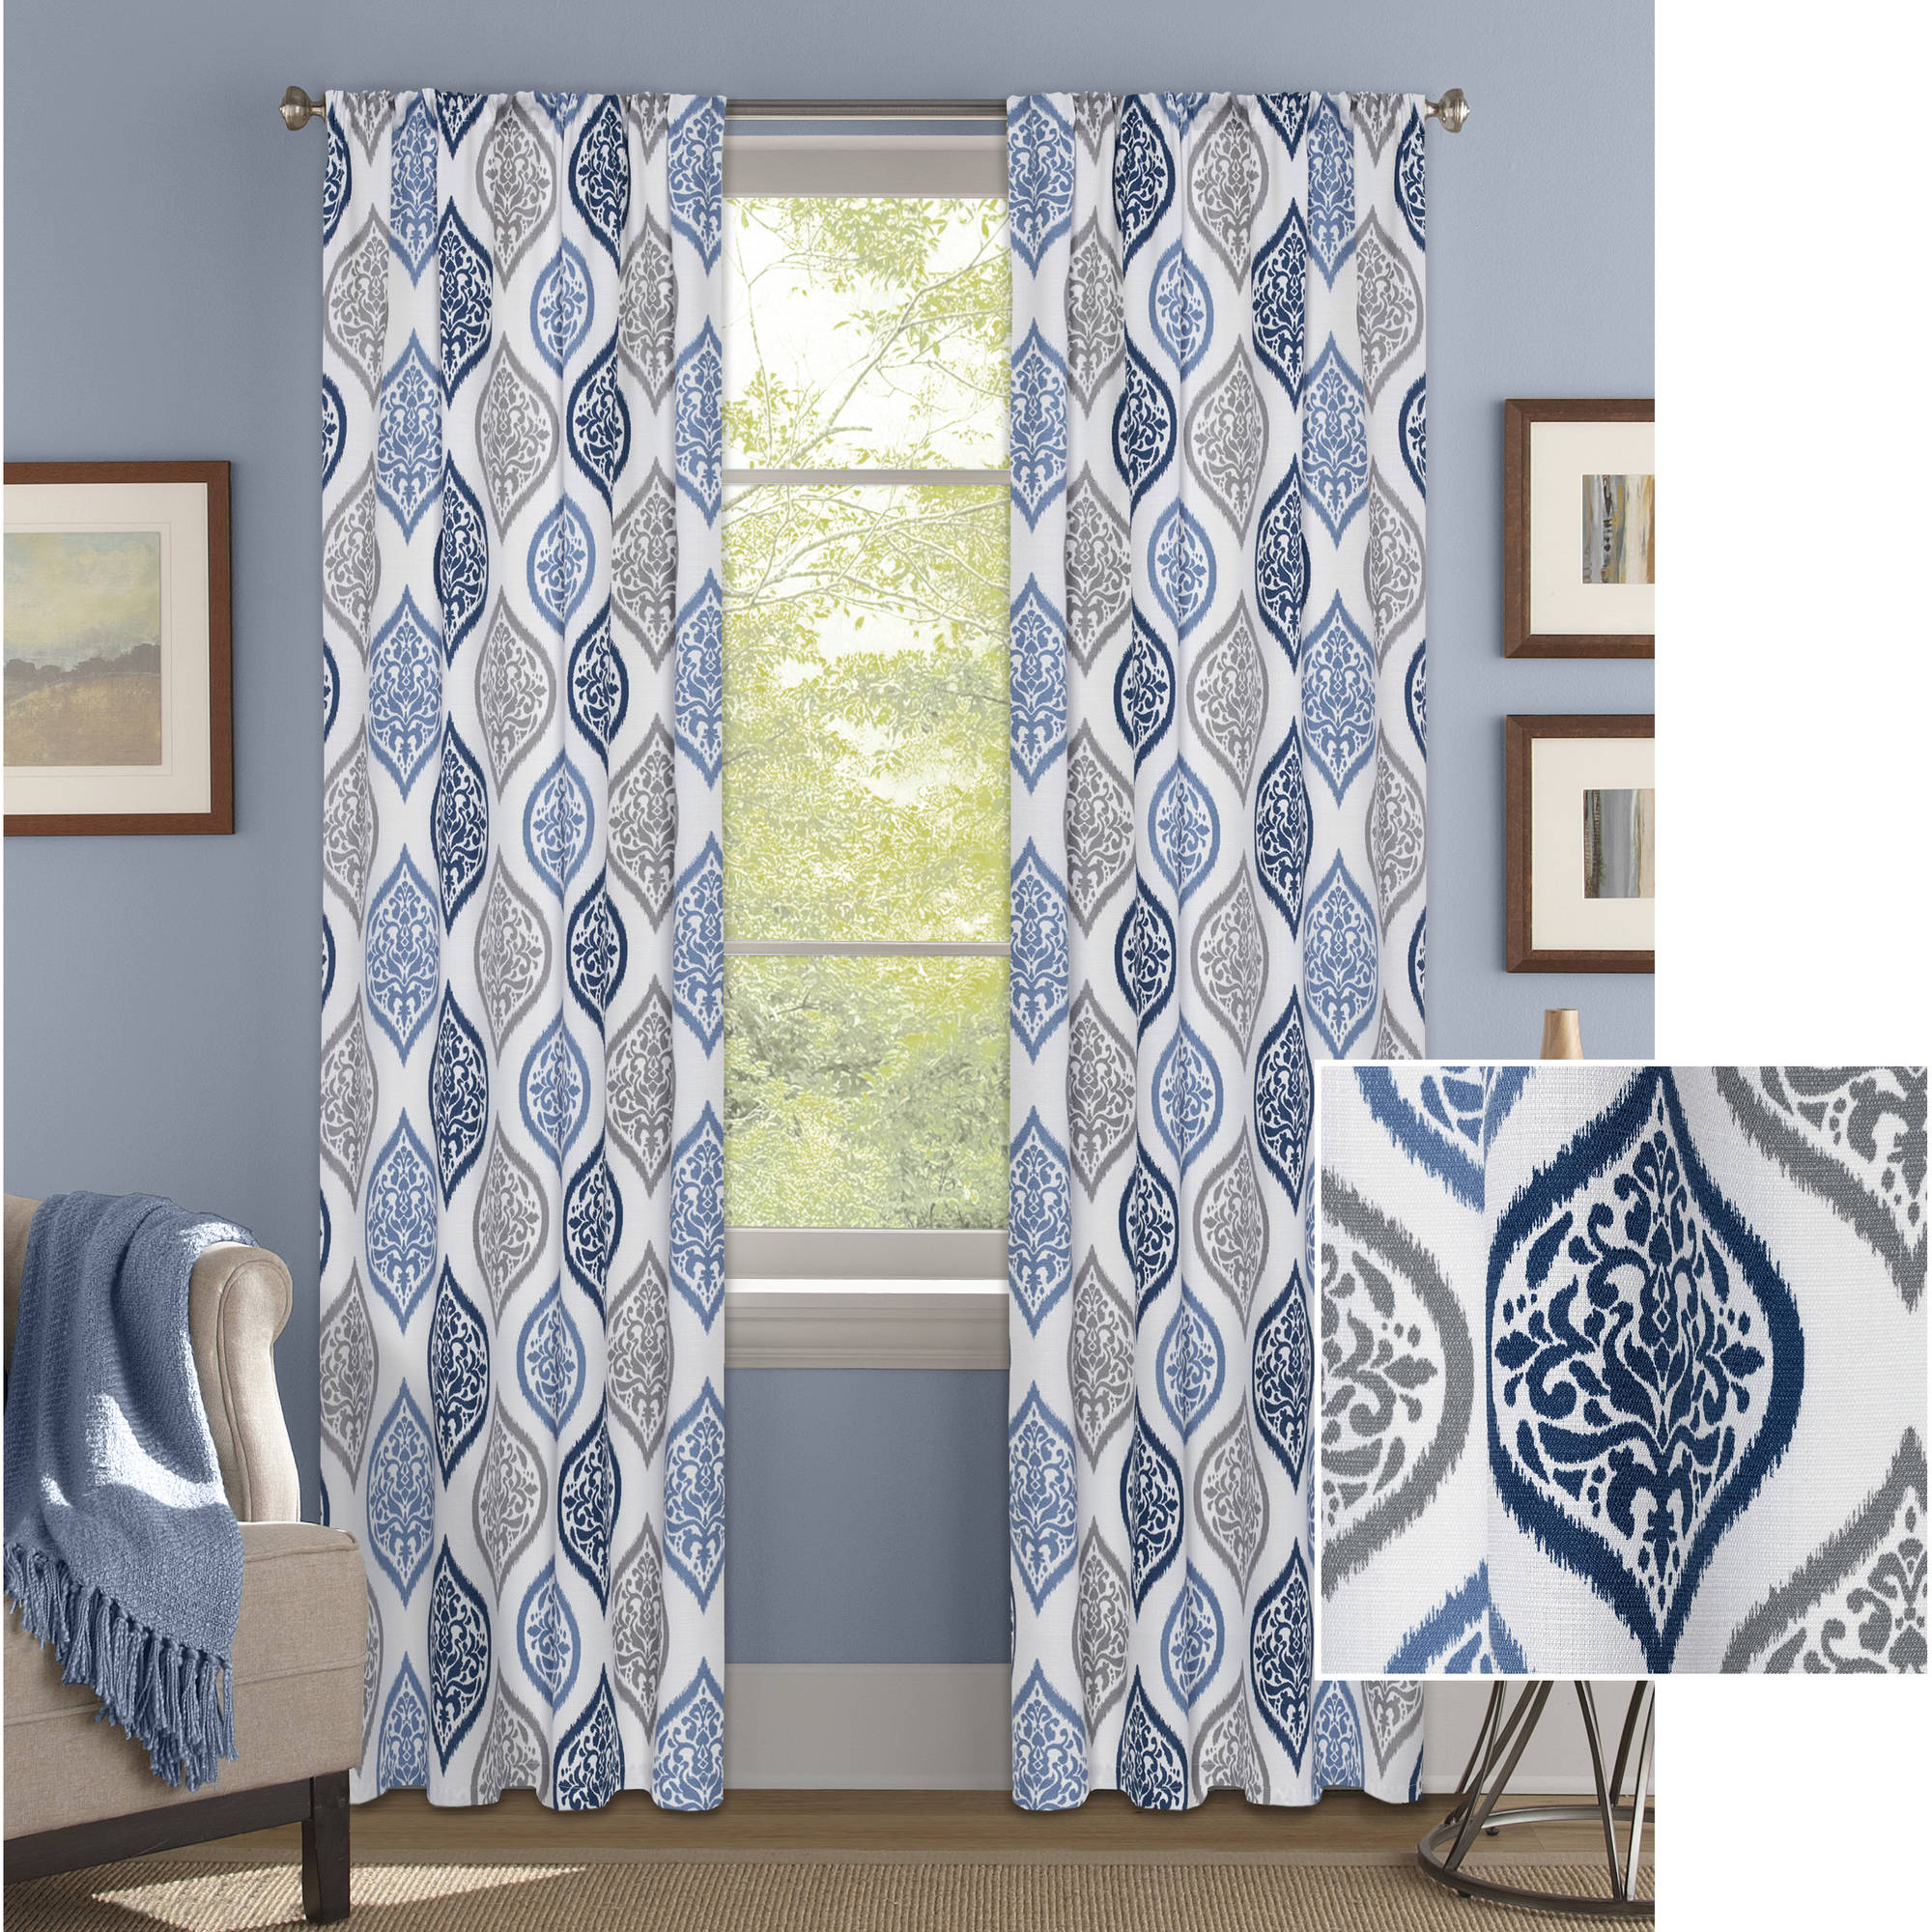 Better Homes and Gardens Damask Ogee Curtain Panel